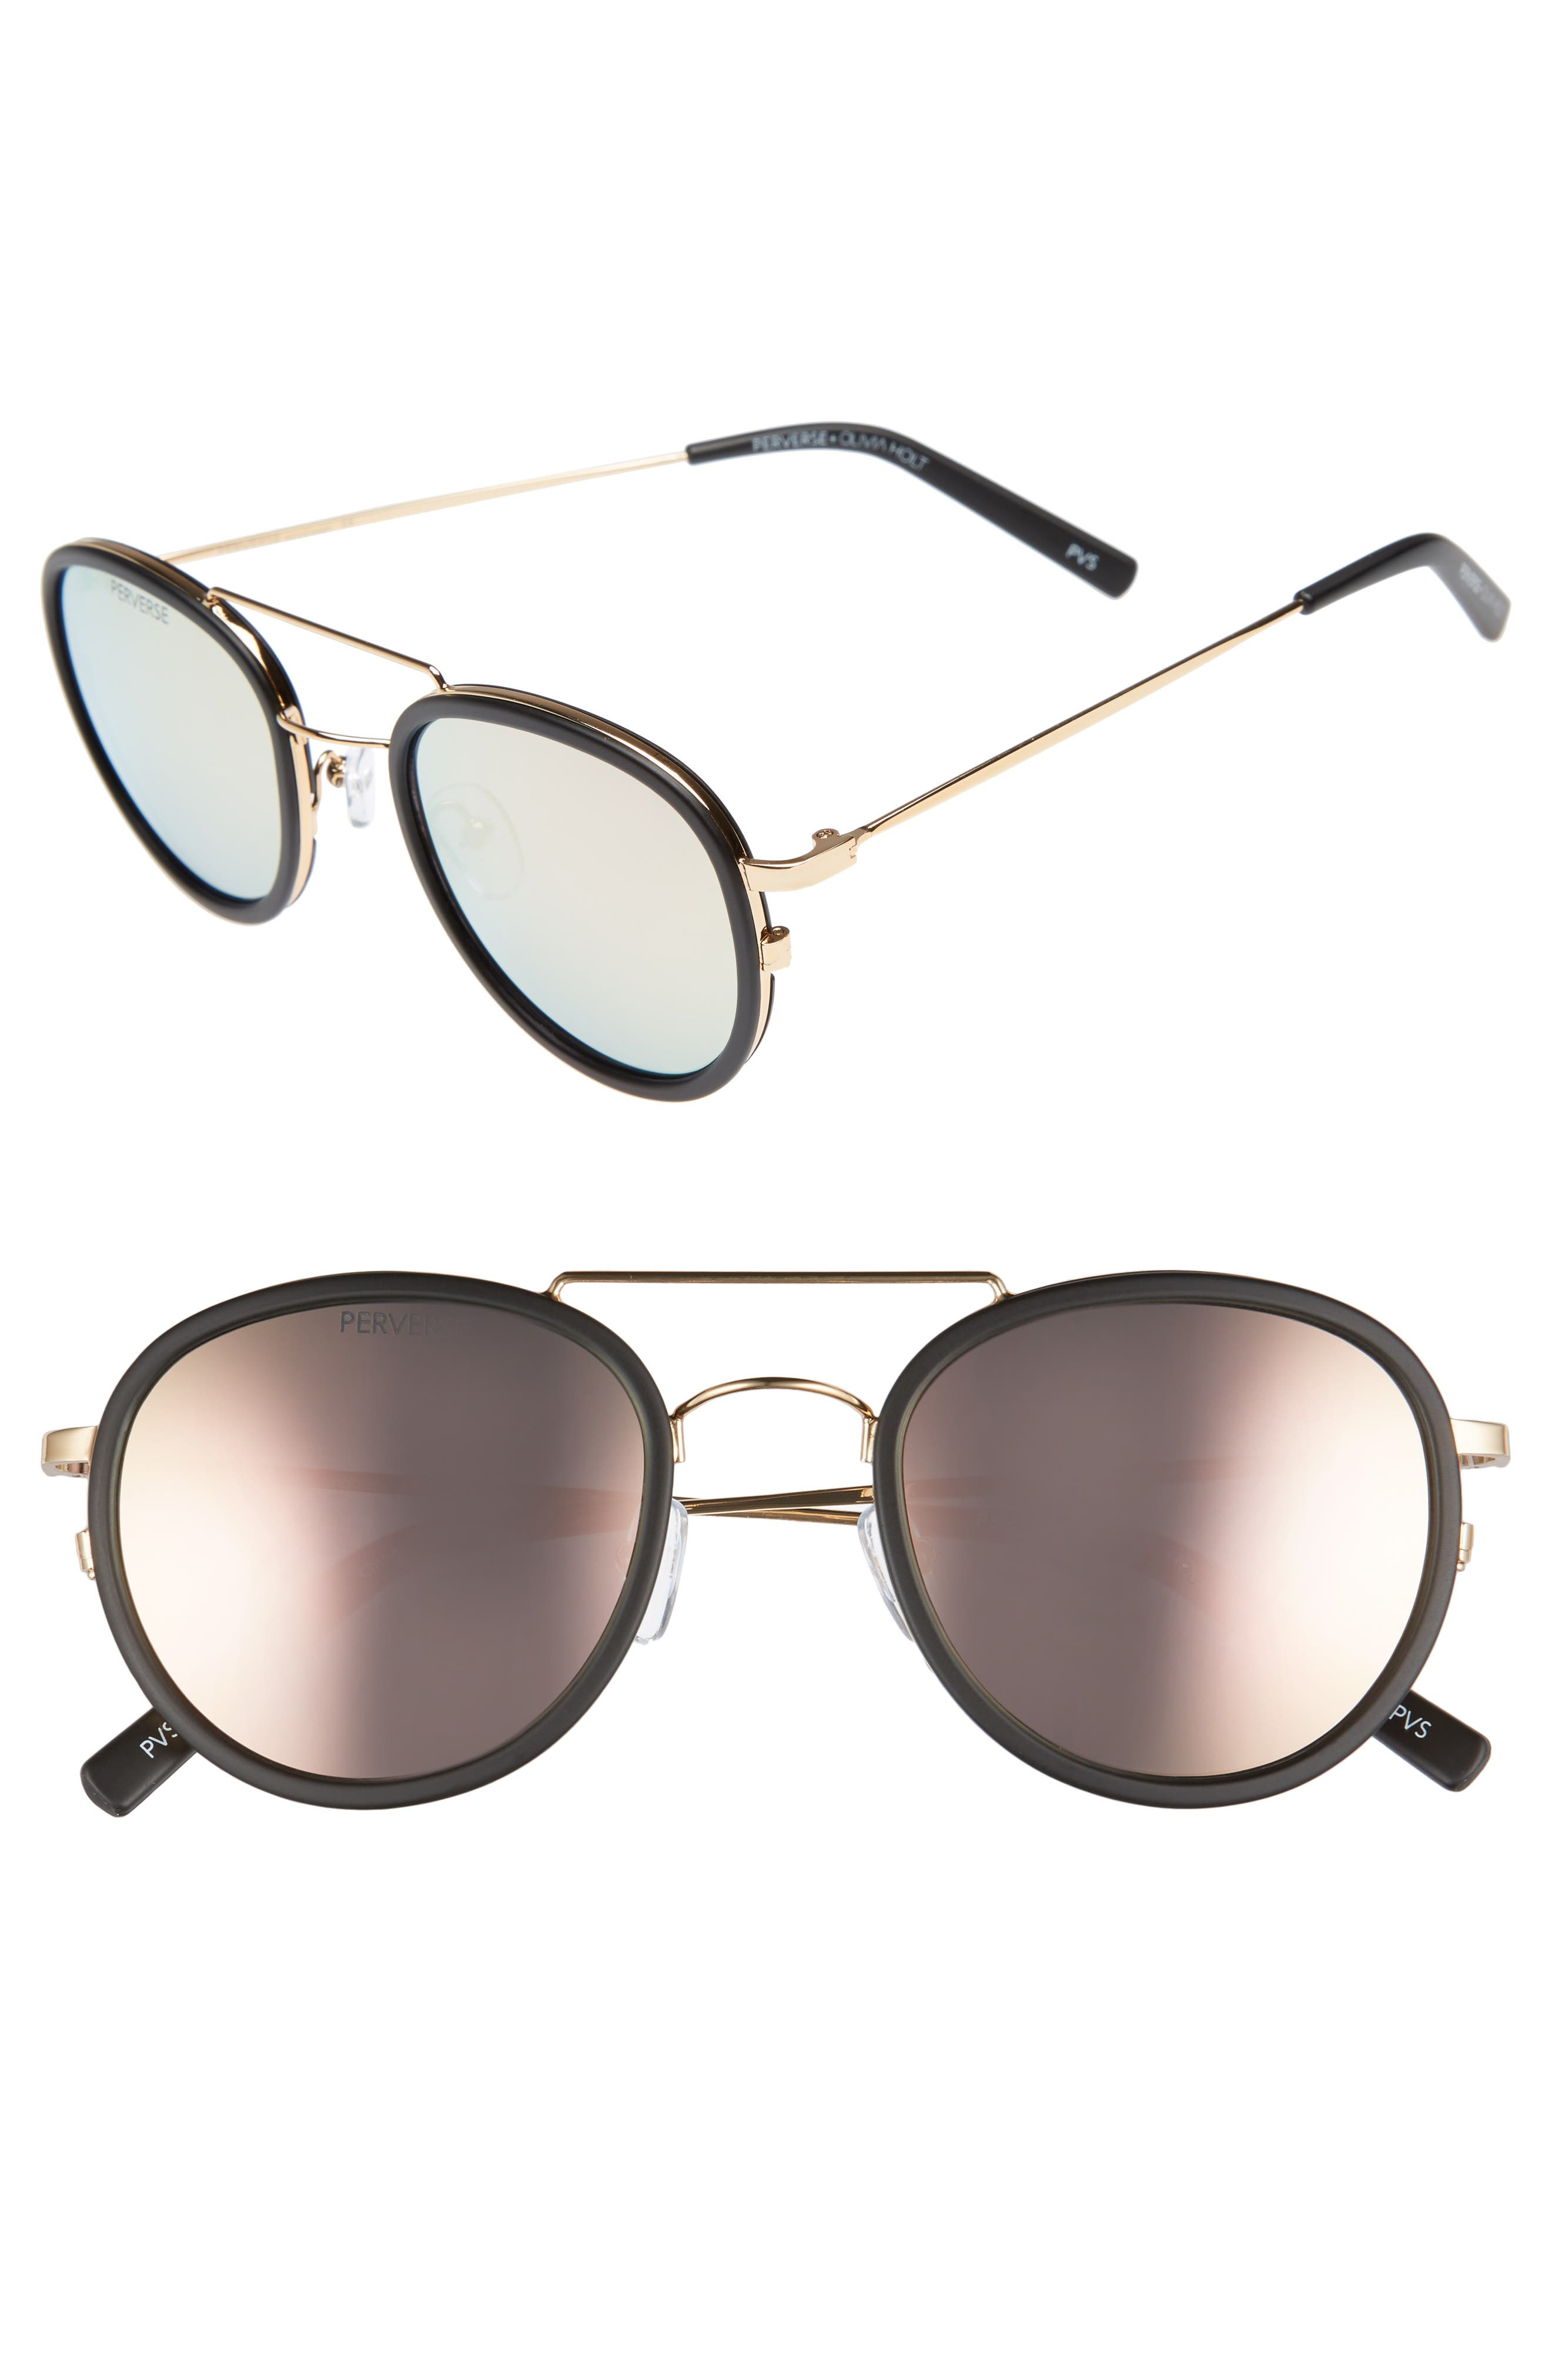 PERVERSE The Kimberly 55mm Mirrored Lens Aviator Sunglasses